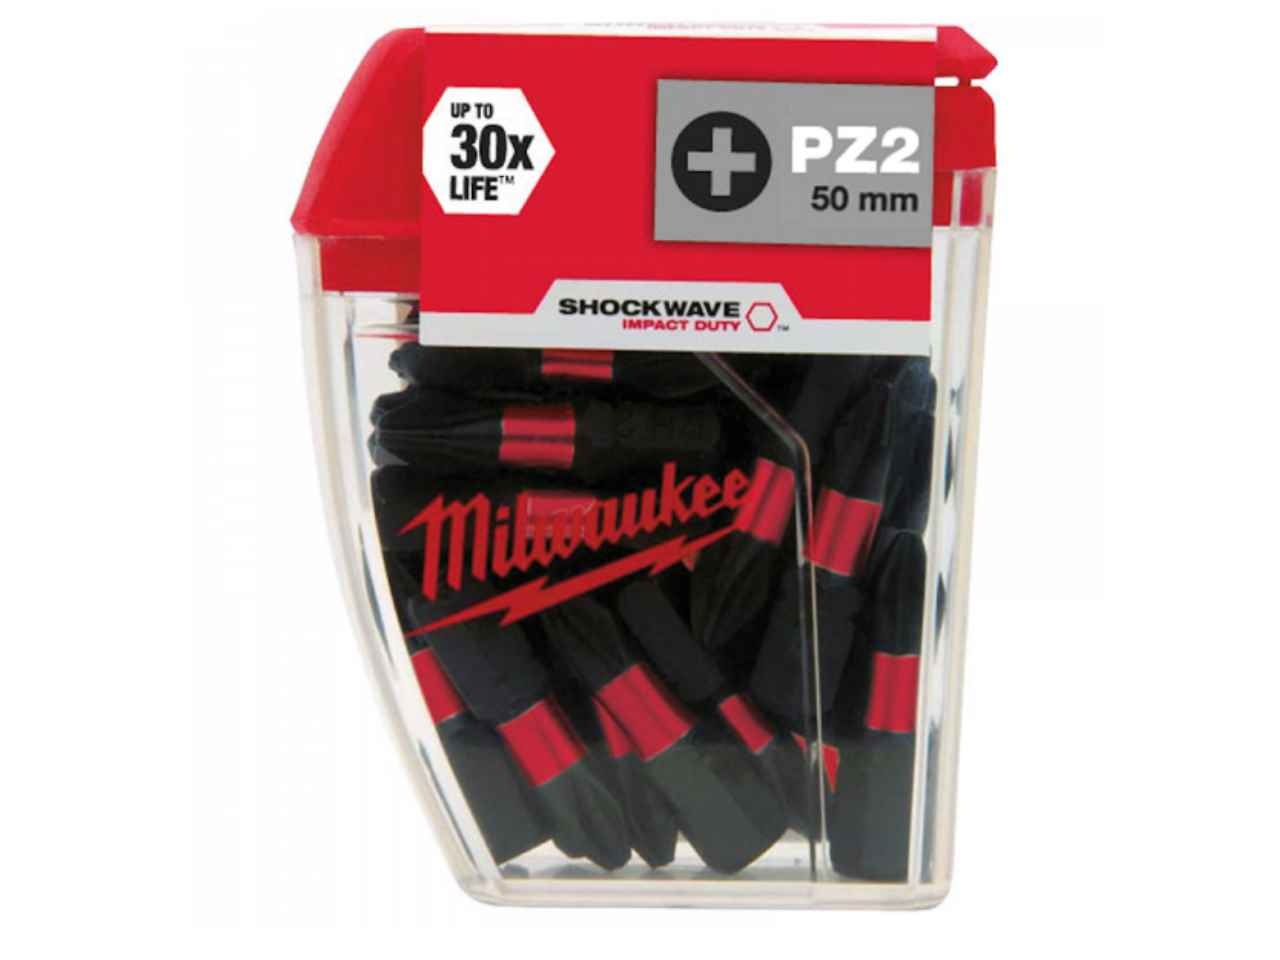 Milwaukee 4932430880 25 x 25MM Shockwave TX25 Bits